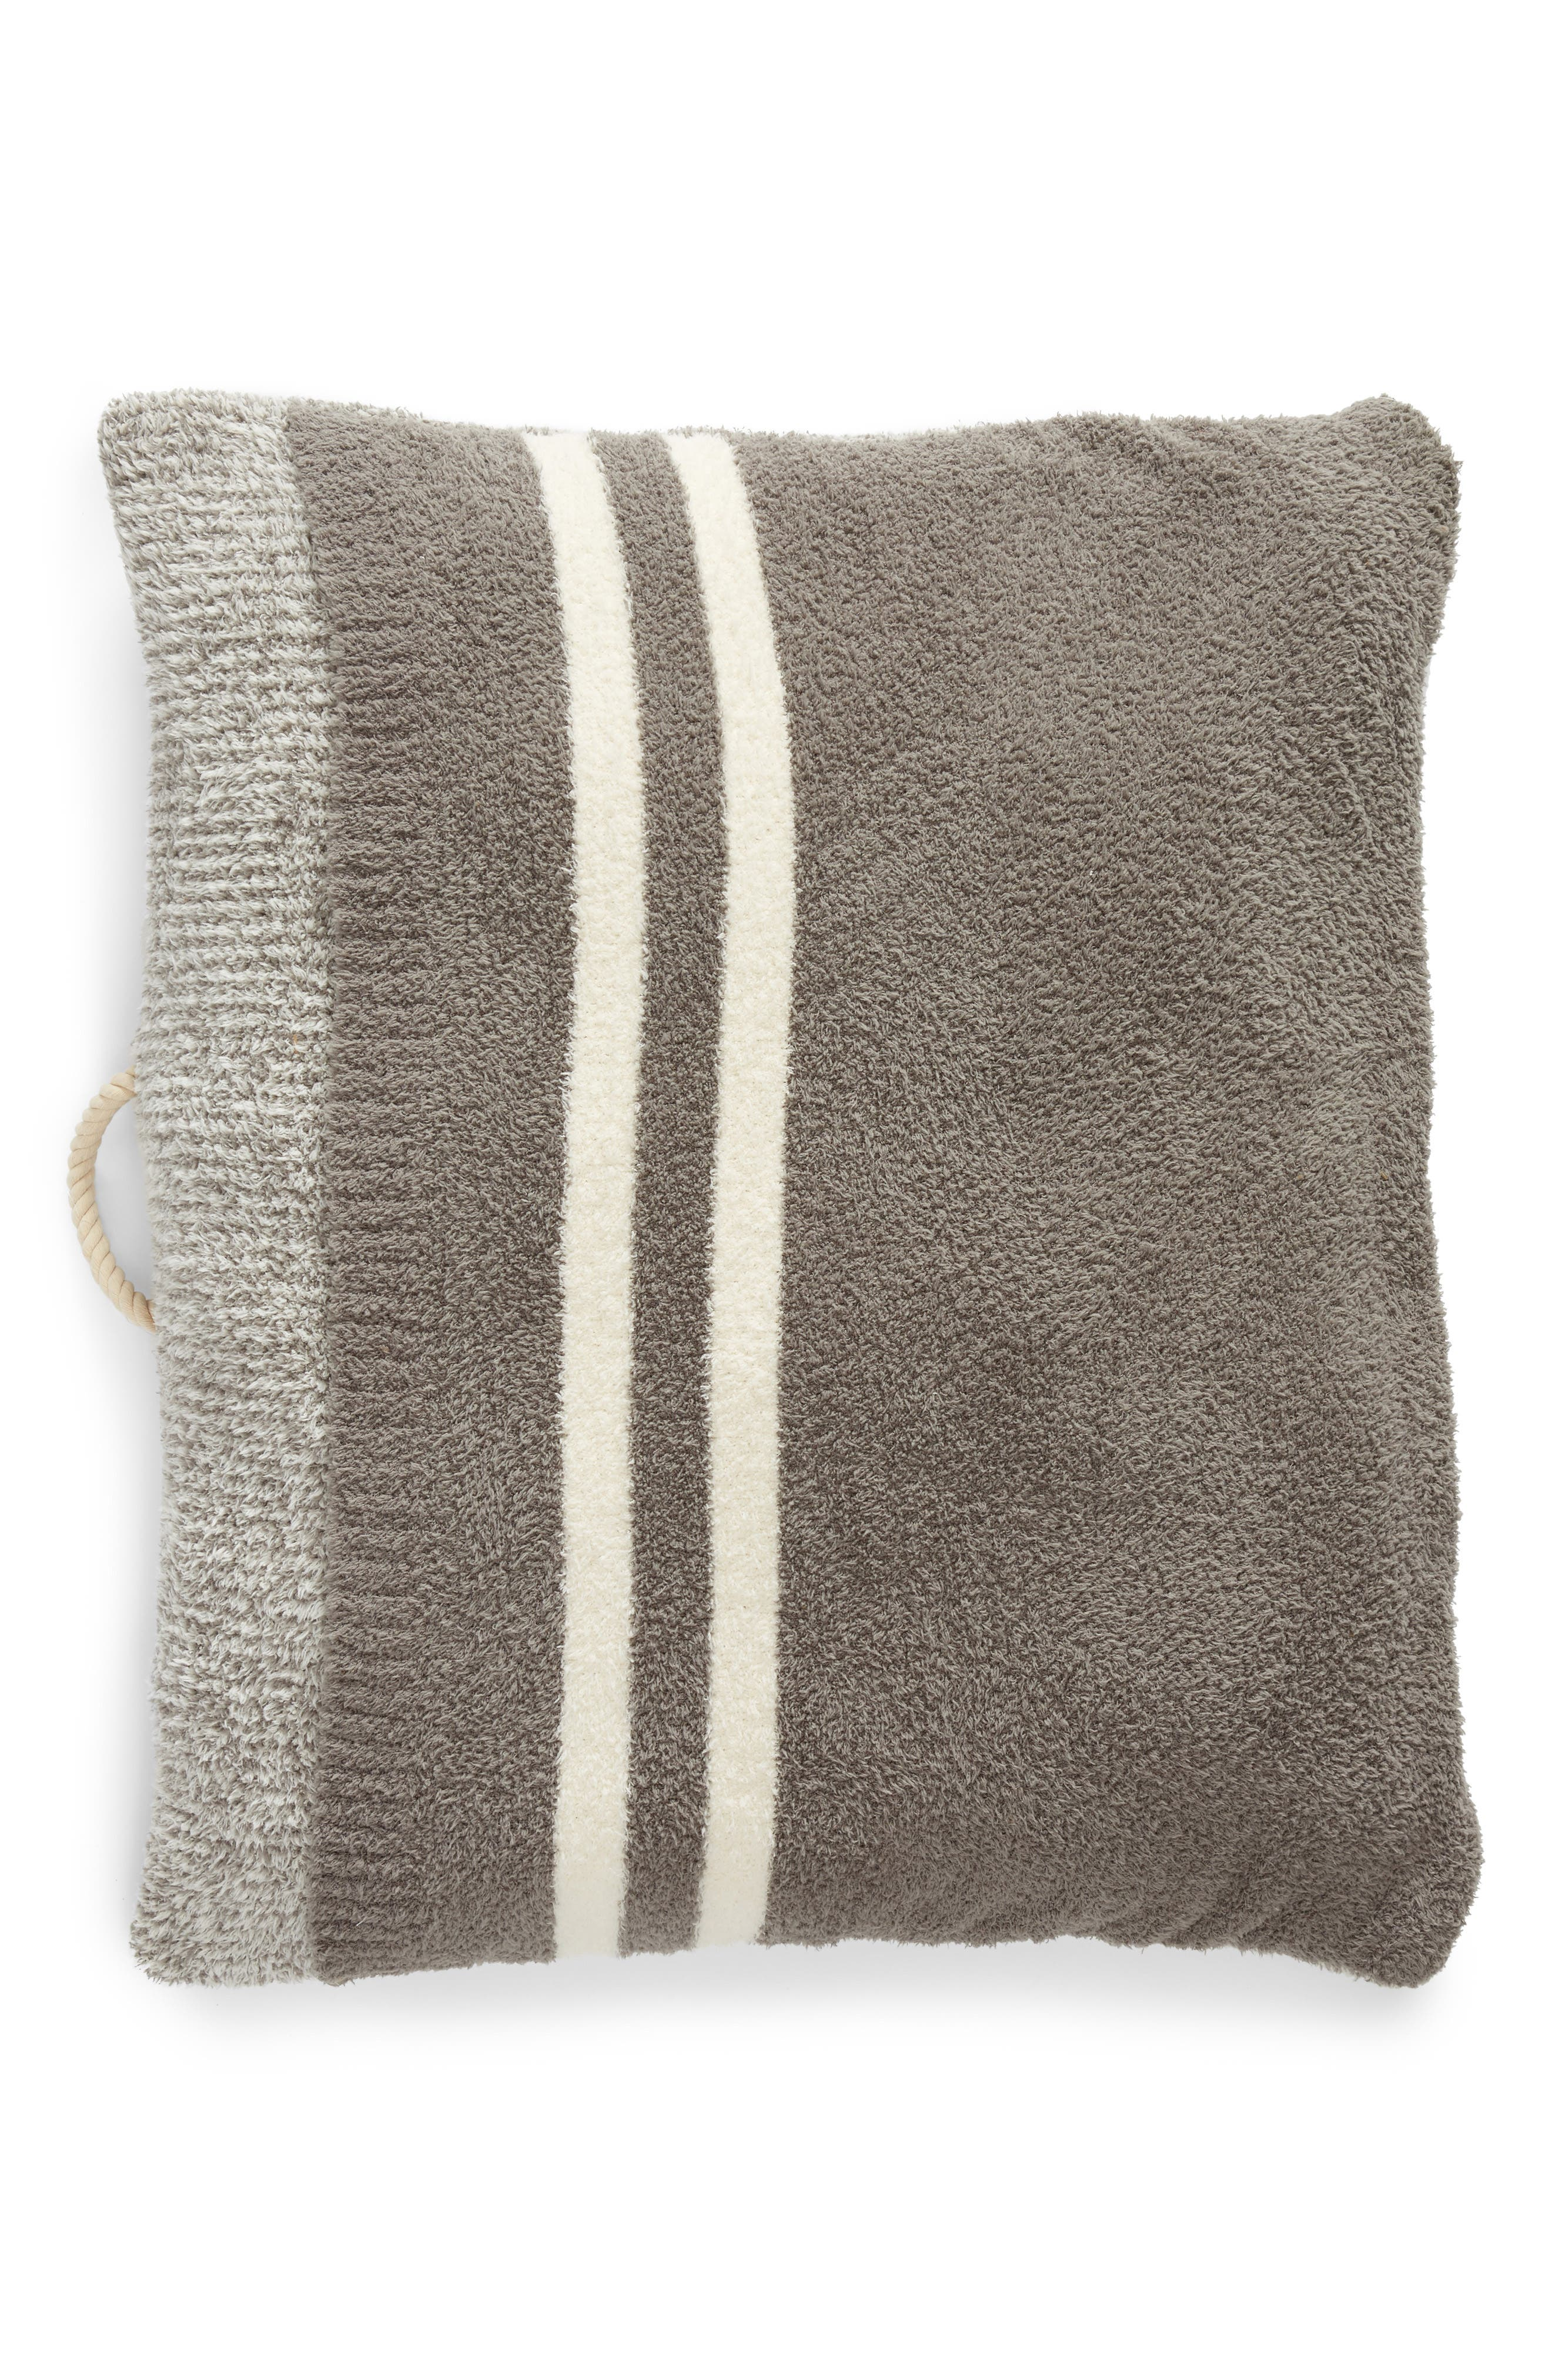 CozyChic Pet Bed<sup>™</sup>,                             Main thumbnail 1, color,                             He-Warm Gray/ Cream